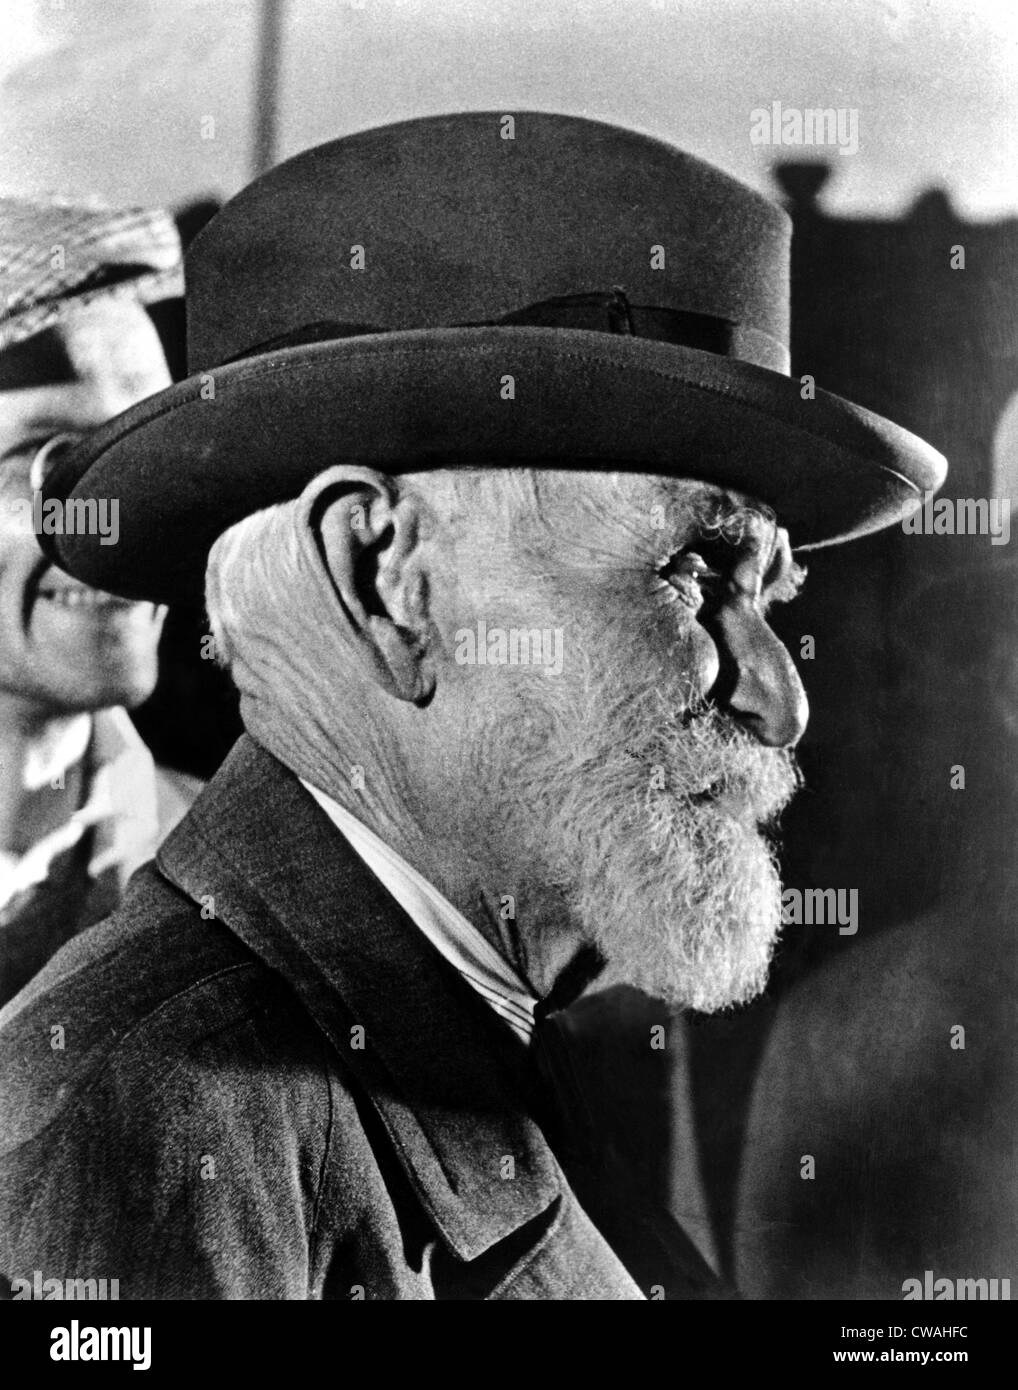 Ivan Petrovitch Pavlov, Physiologist and Nobel Prize winner, 1930s. Courtesy: CSU Archives / Everett Collection - Stock Image